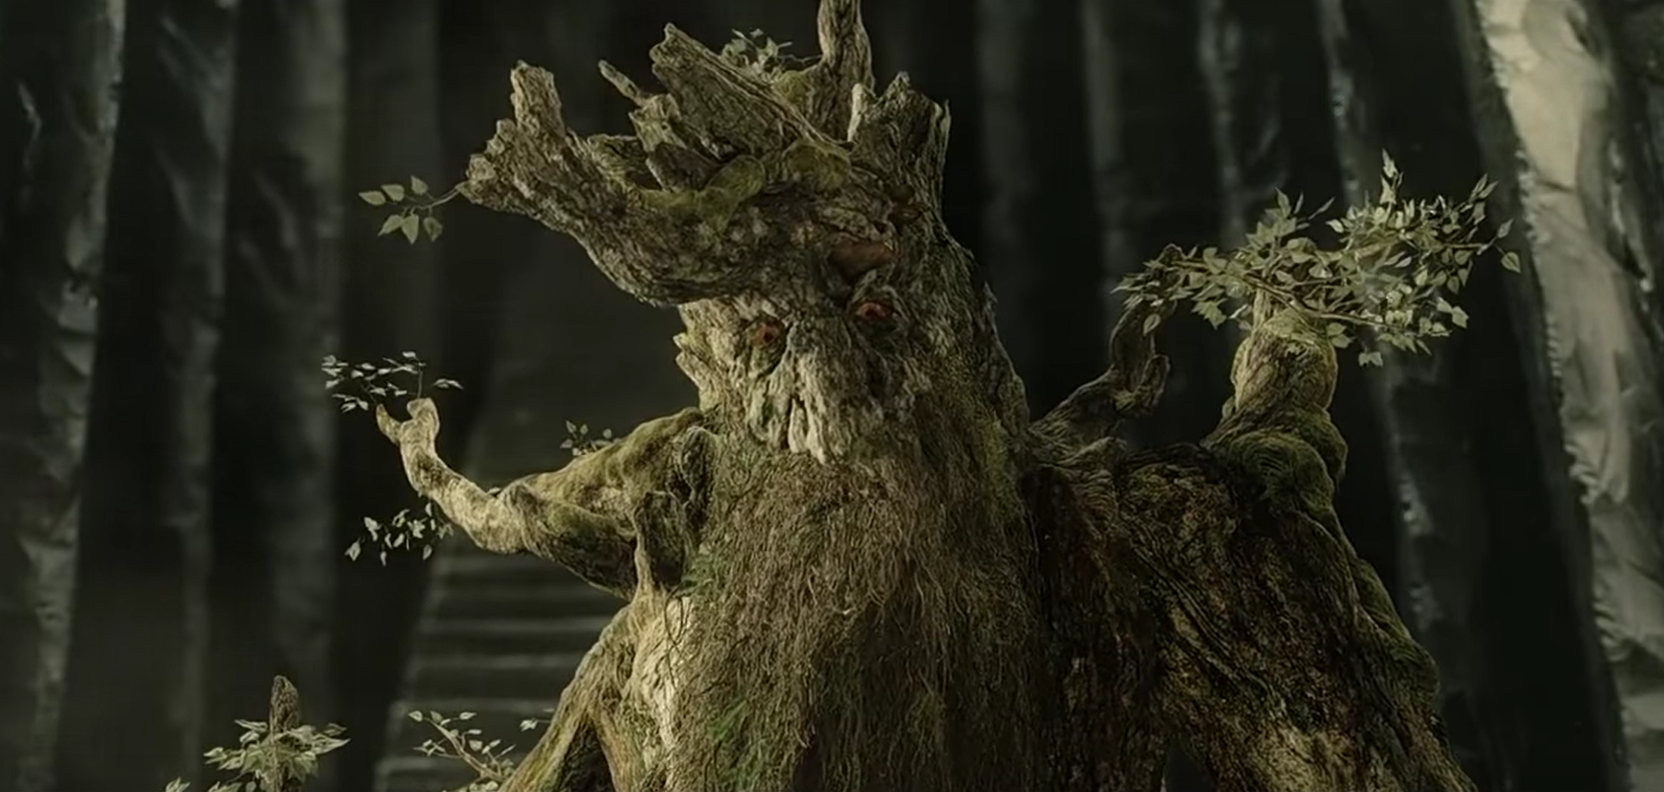 This image shows Treebeard the Ent in The Two Towers